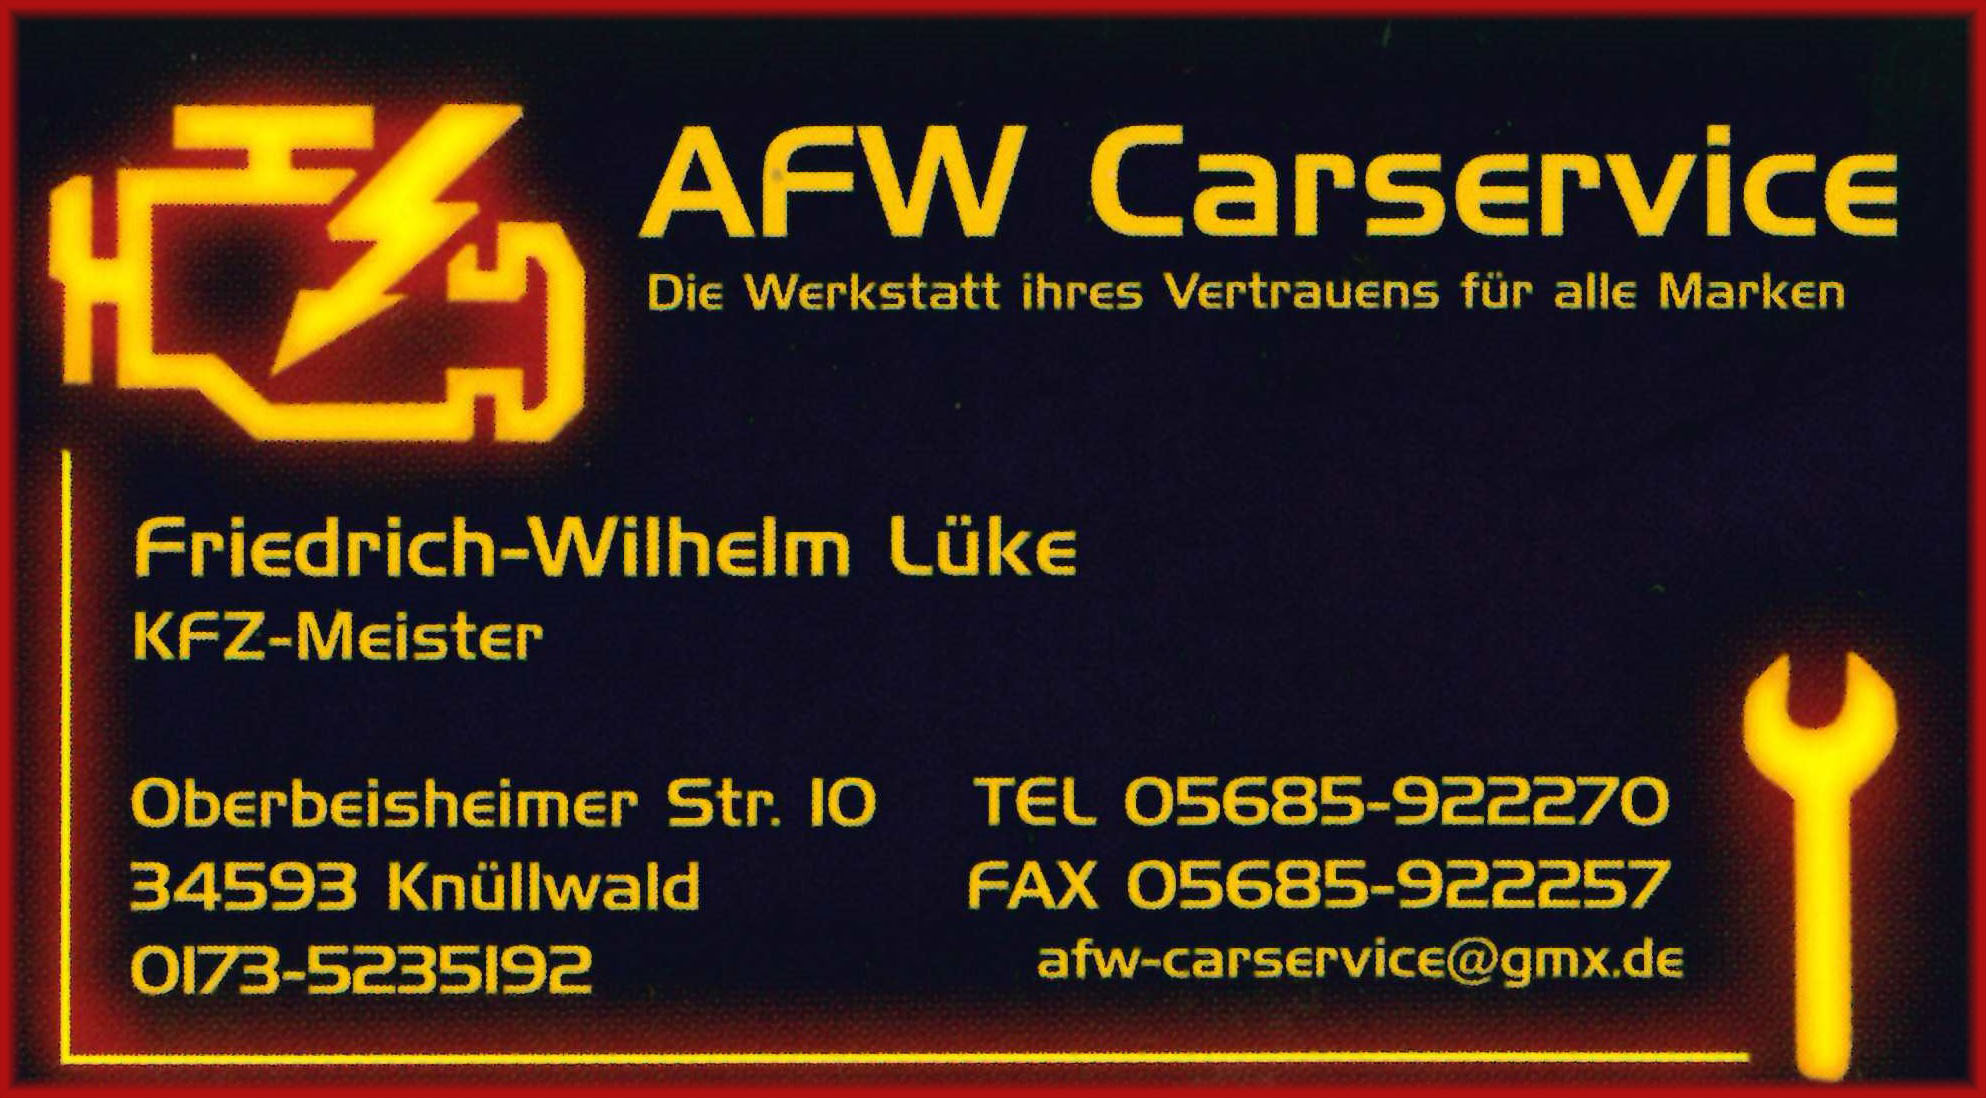 AFW Carservice